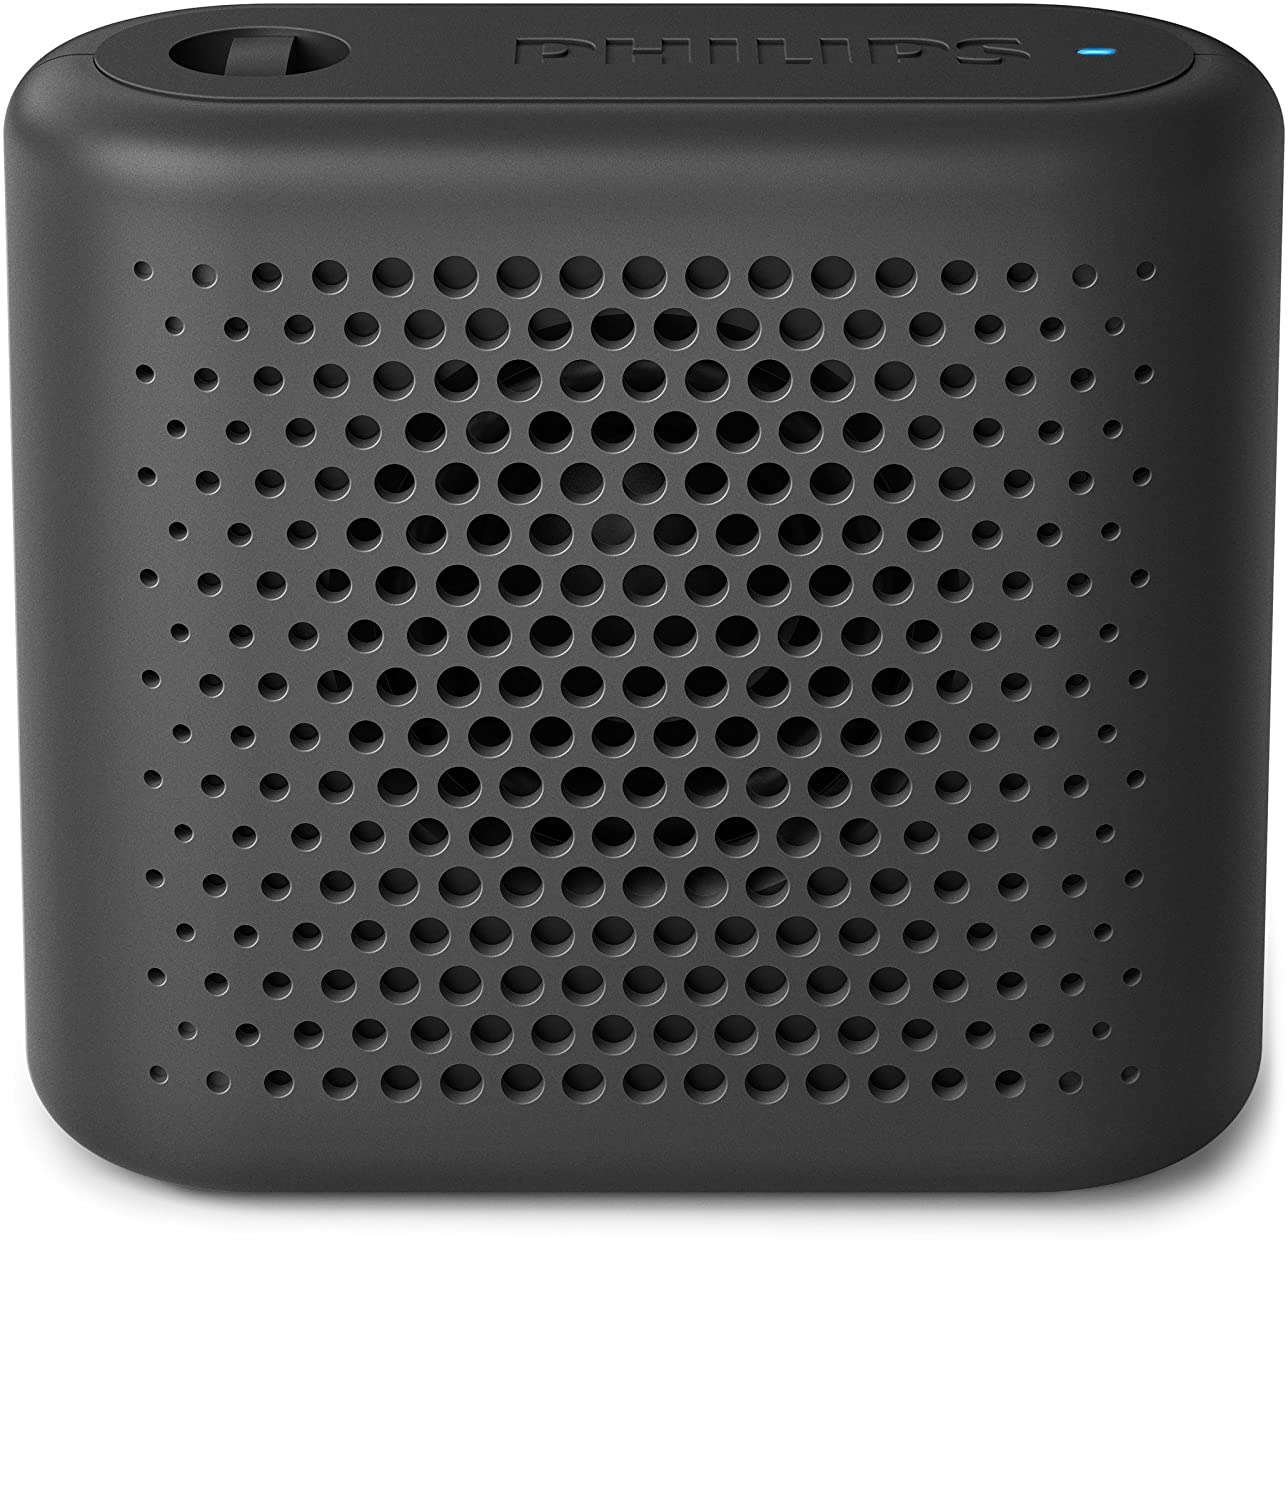 Android y Tablet Compatible con Smartphones Mini Altavoz Bluetooth inal/ámbrico portatil iPhone Philips BT55B Negro